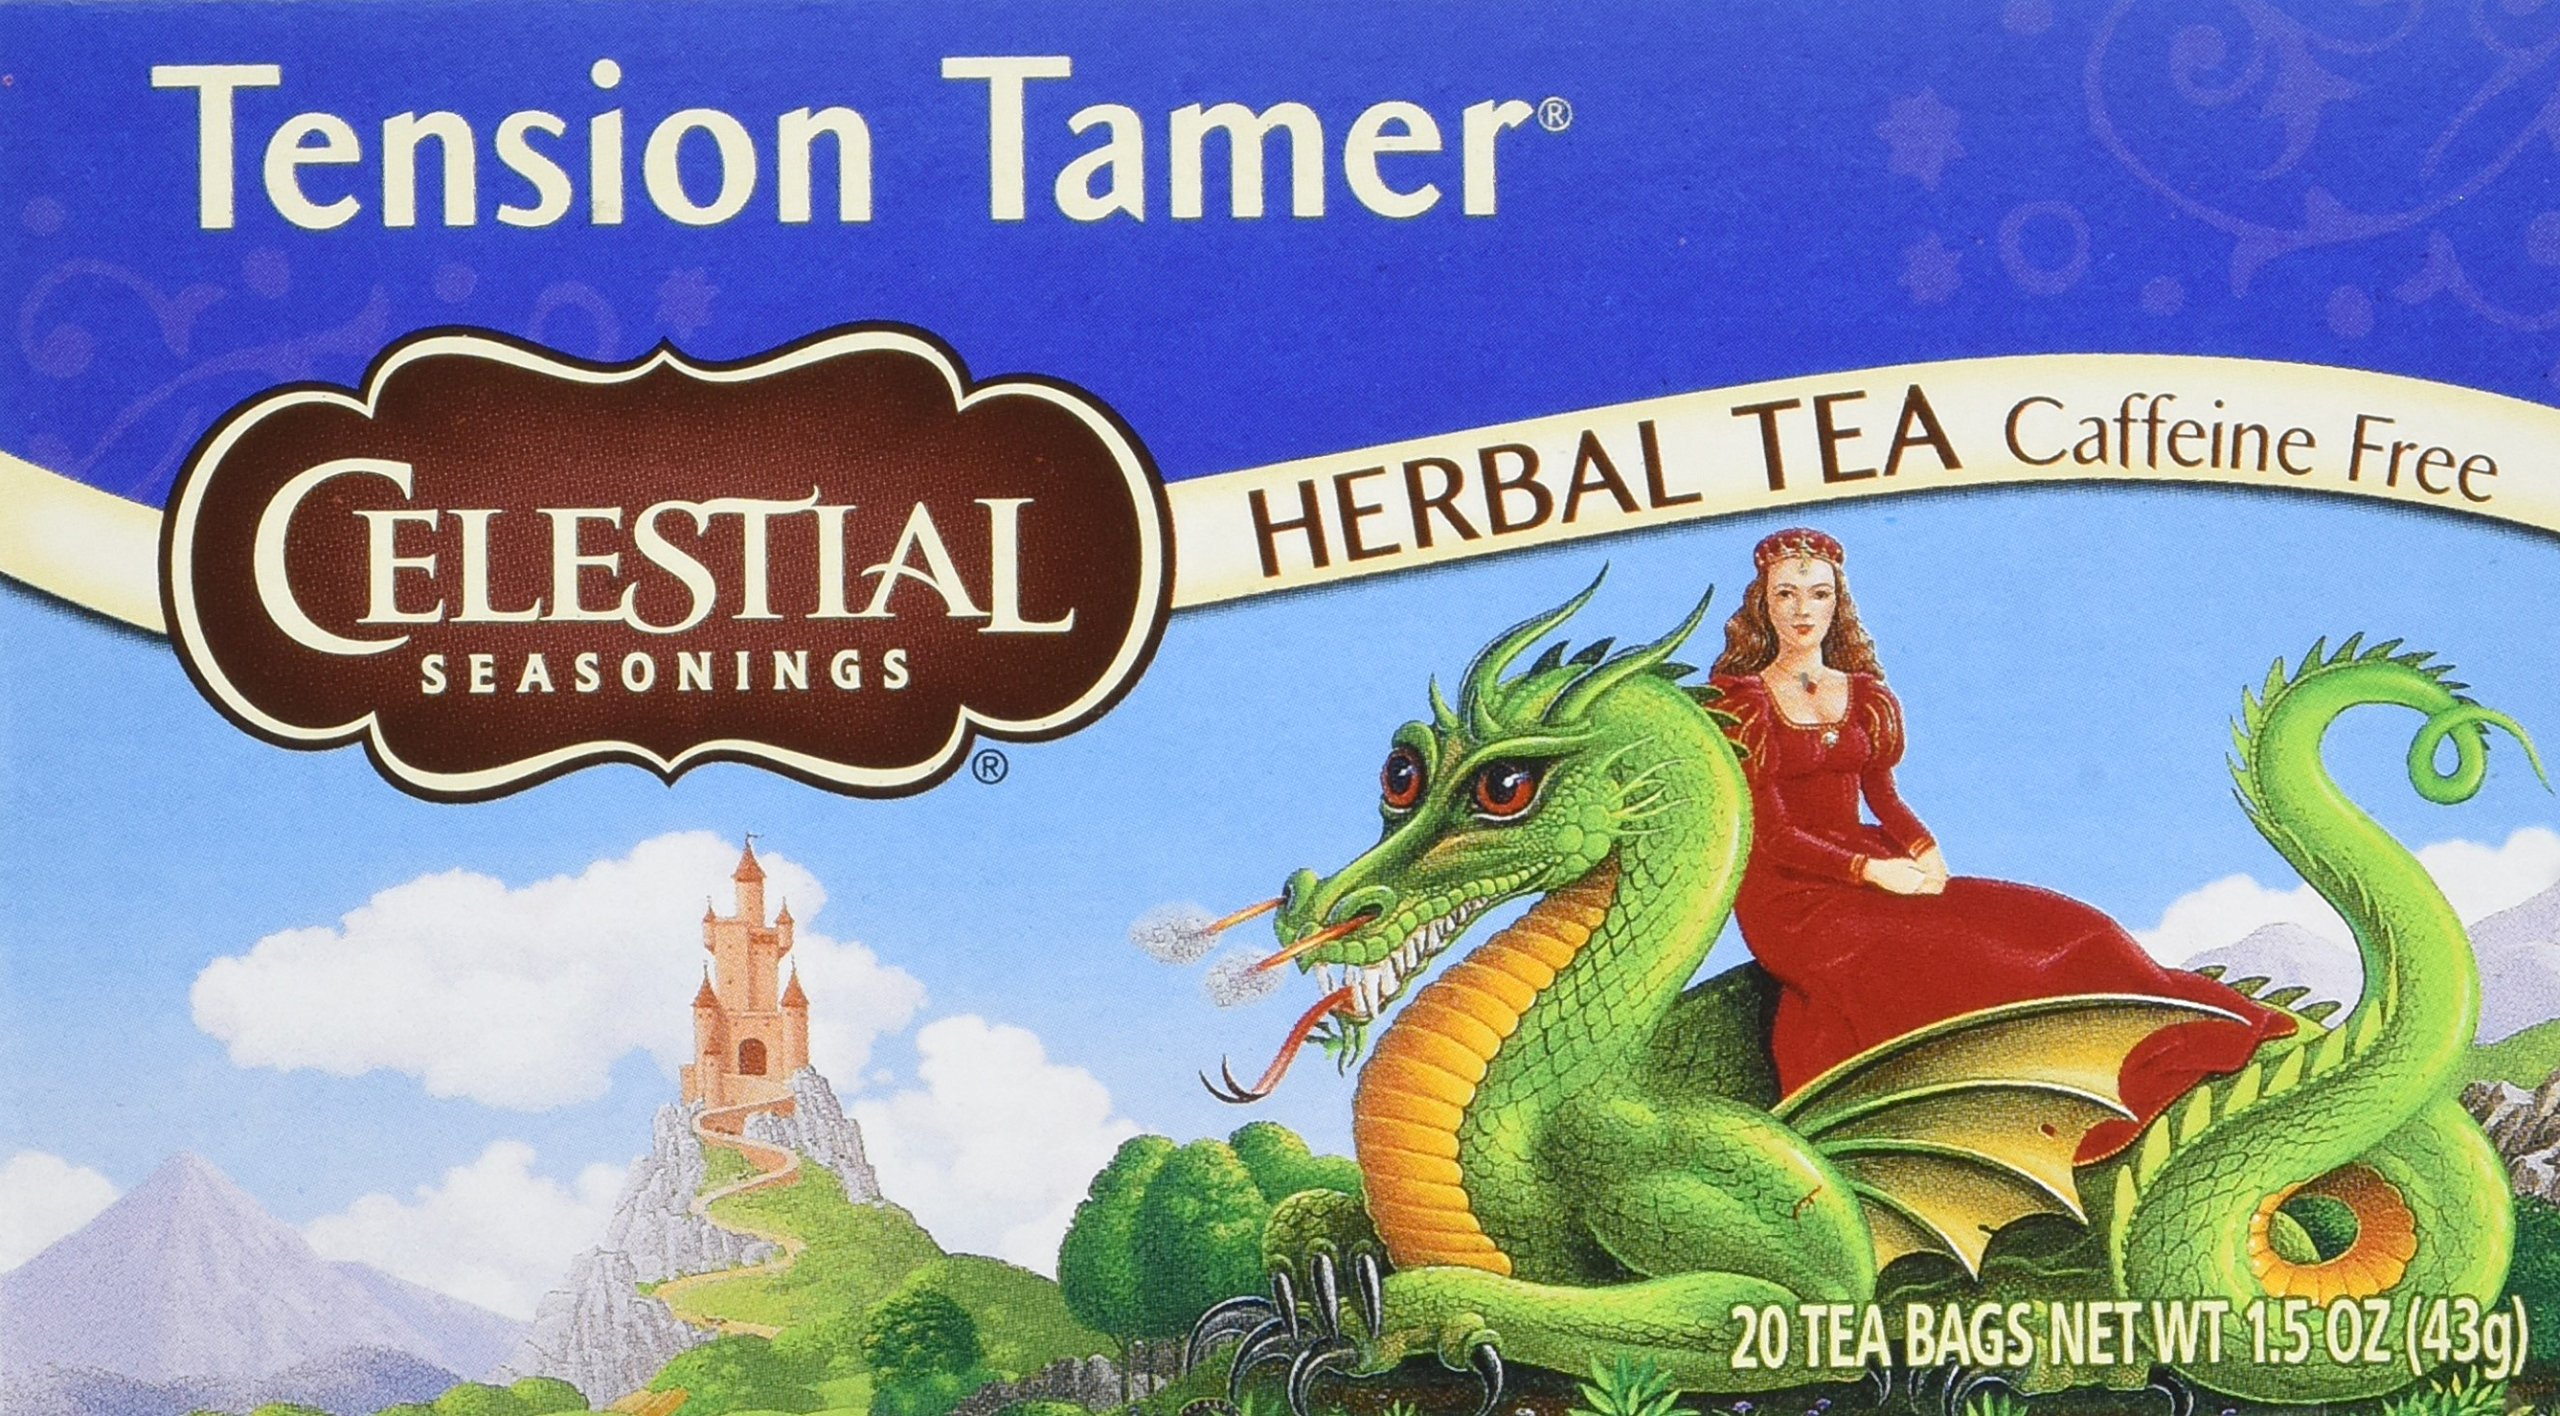 Celestial Seasonings Tension Tamer Tea Bags - 20 ct - 6 pk